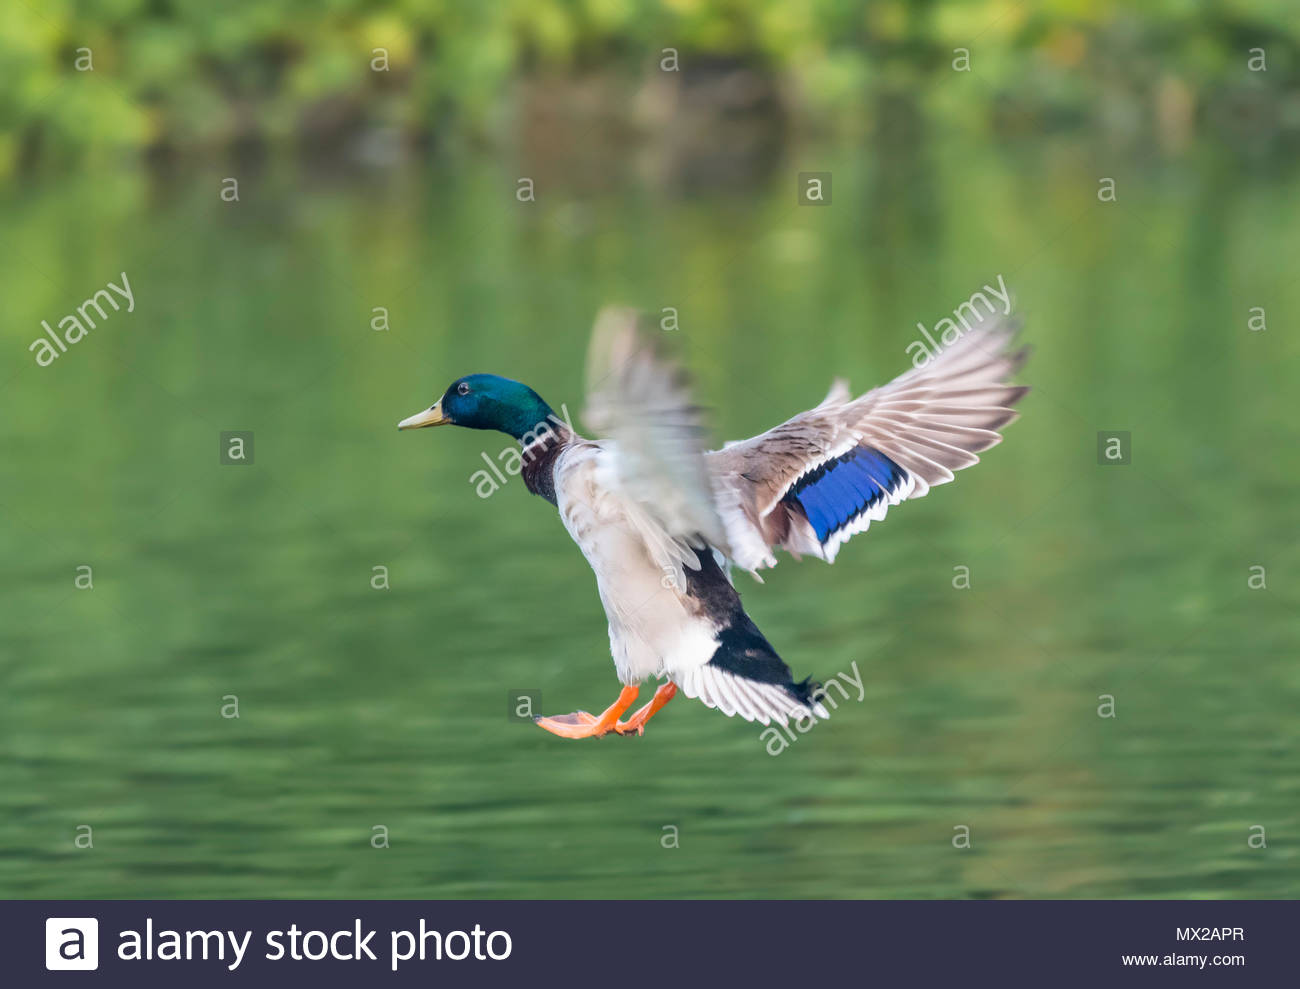 Drake Mallard Duck (Anas platyrhynchos) flying low over water in Spring in West Sussex, England, UK. - Stock Image